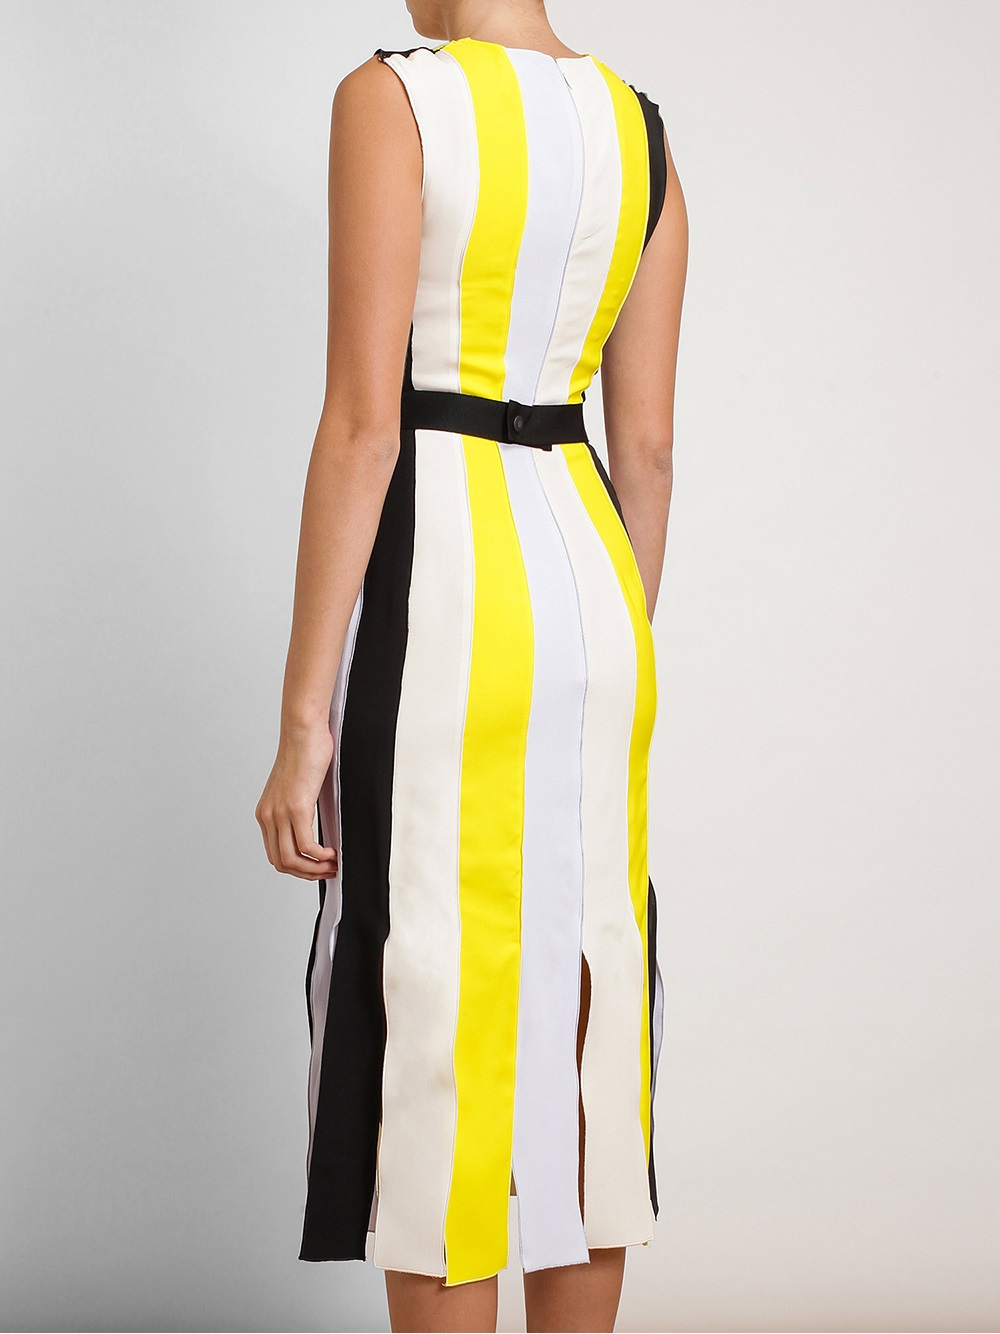 Being-mary-jane-roksanda-ilincic-yellow-wyatt-pleated-crepe-dress-being mary-jane-striped-dress-season-two-episode-six-